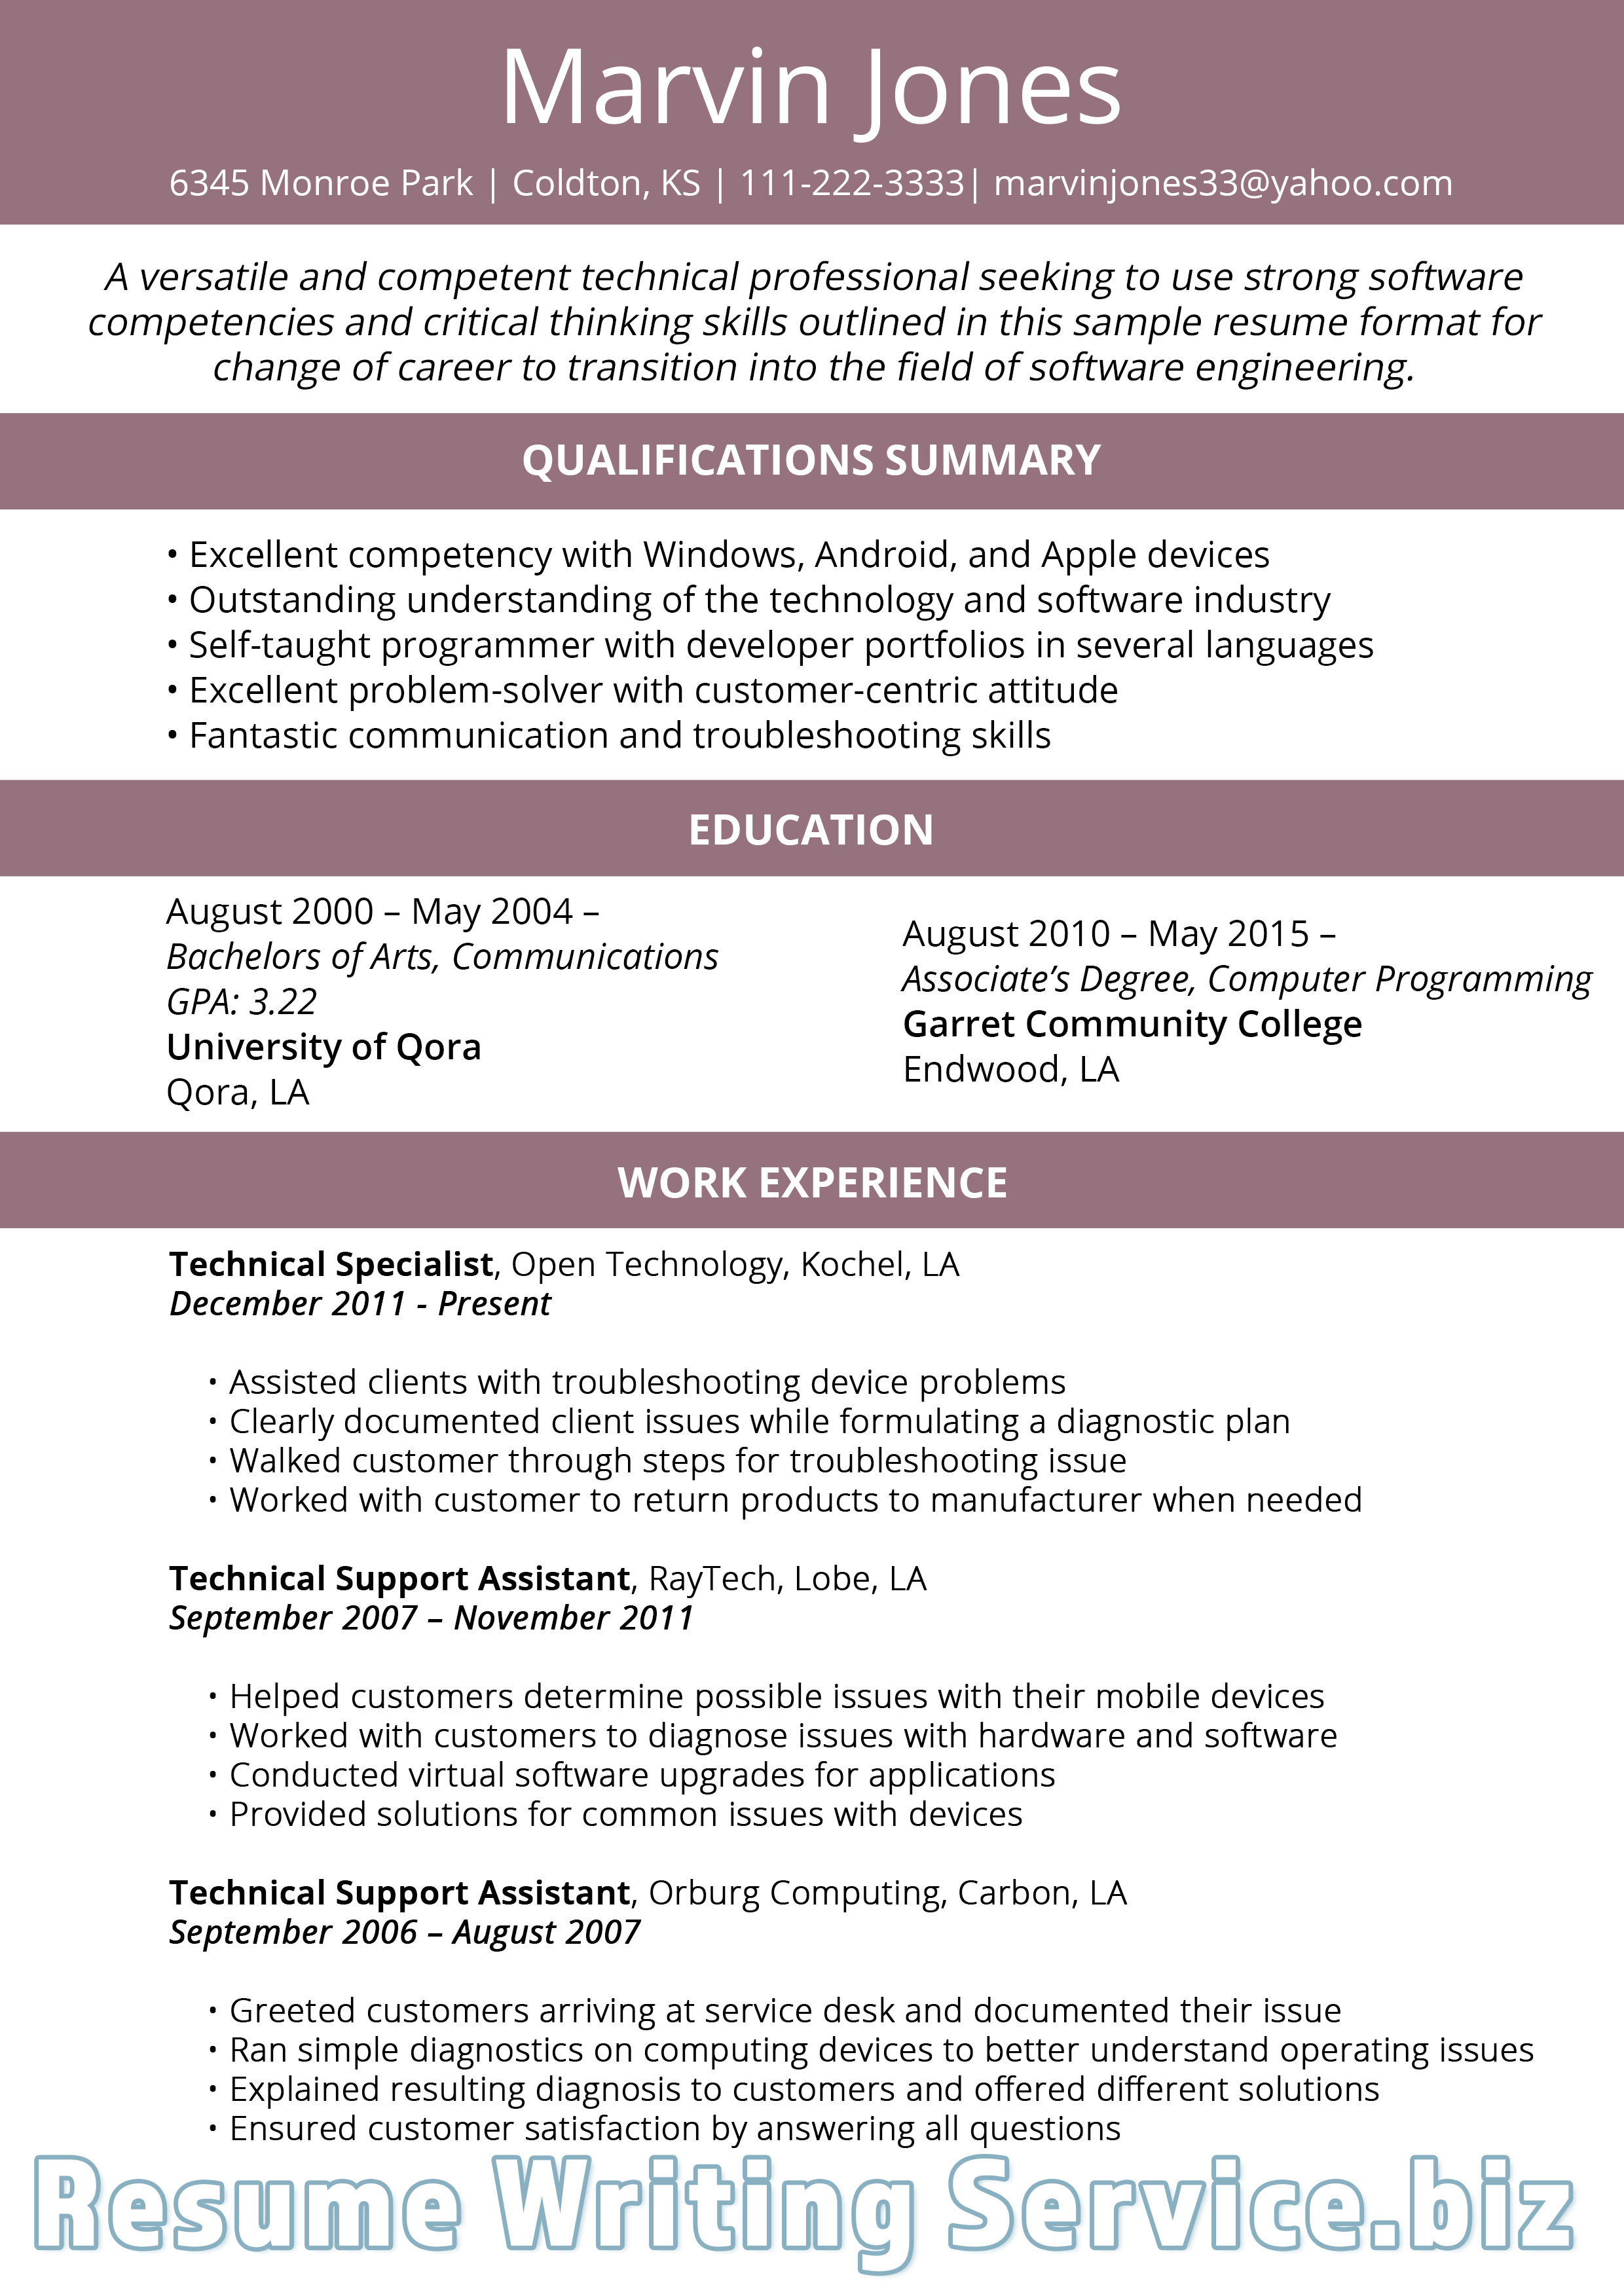 career change resume format 2019